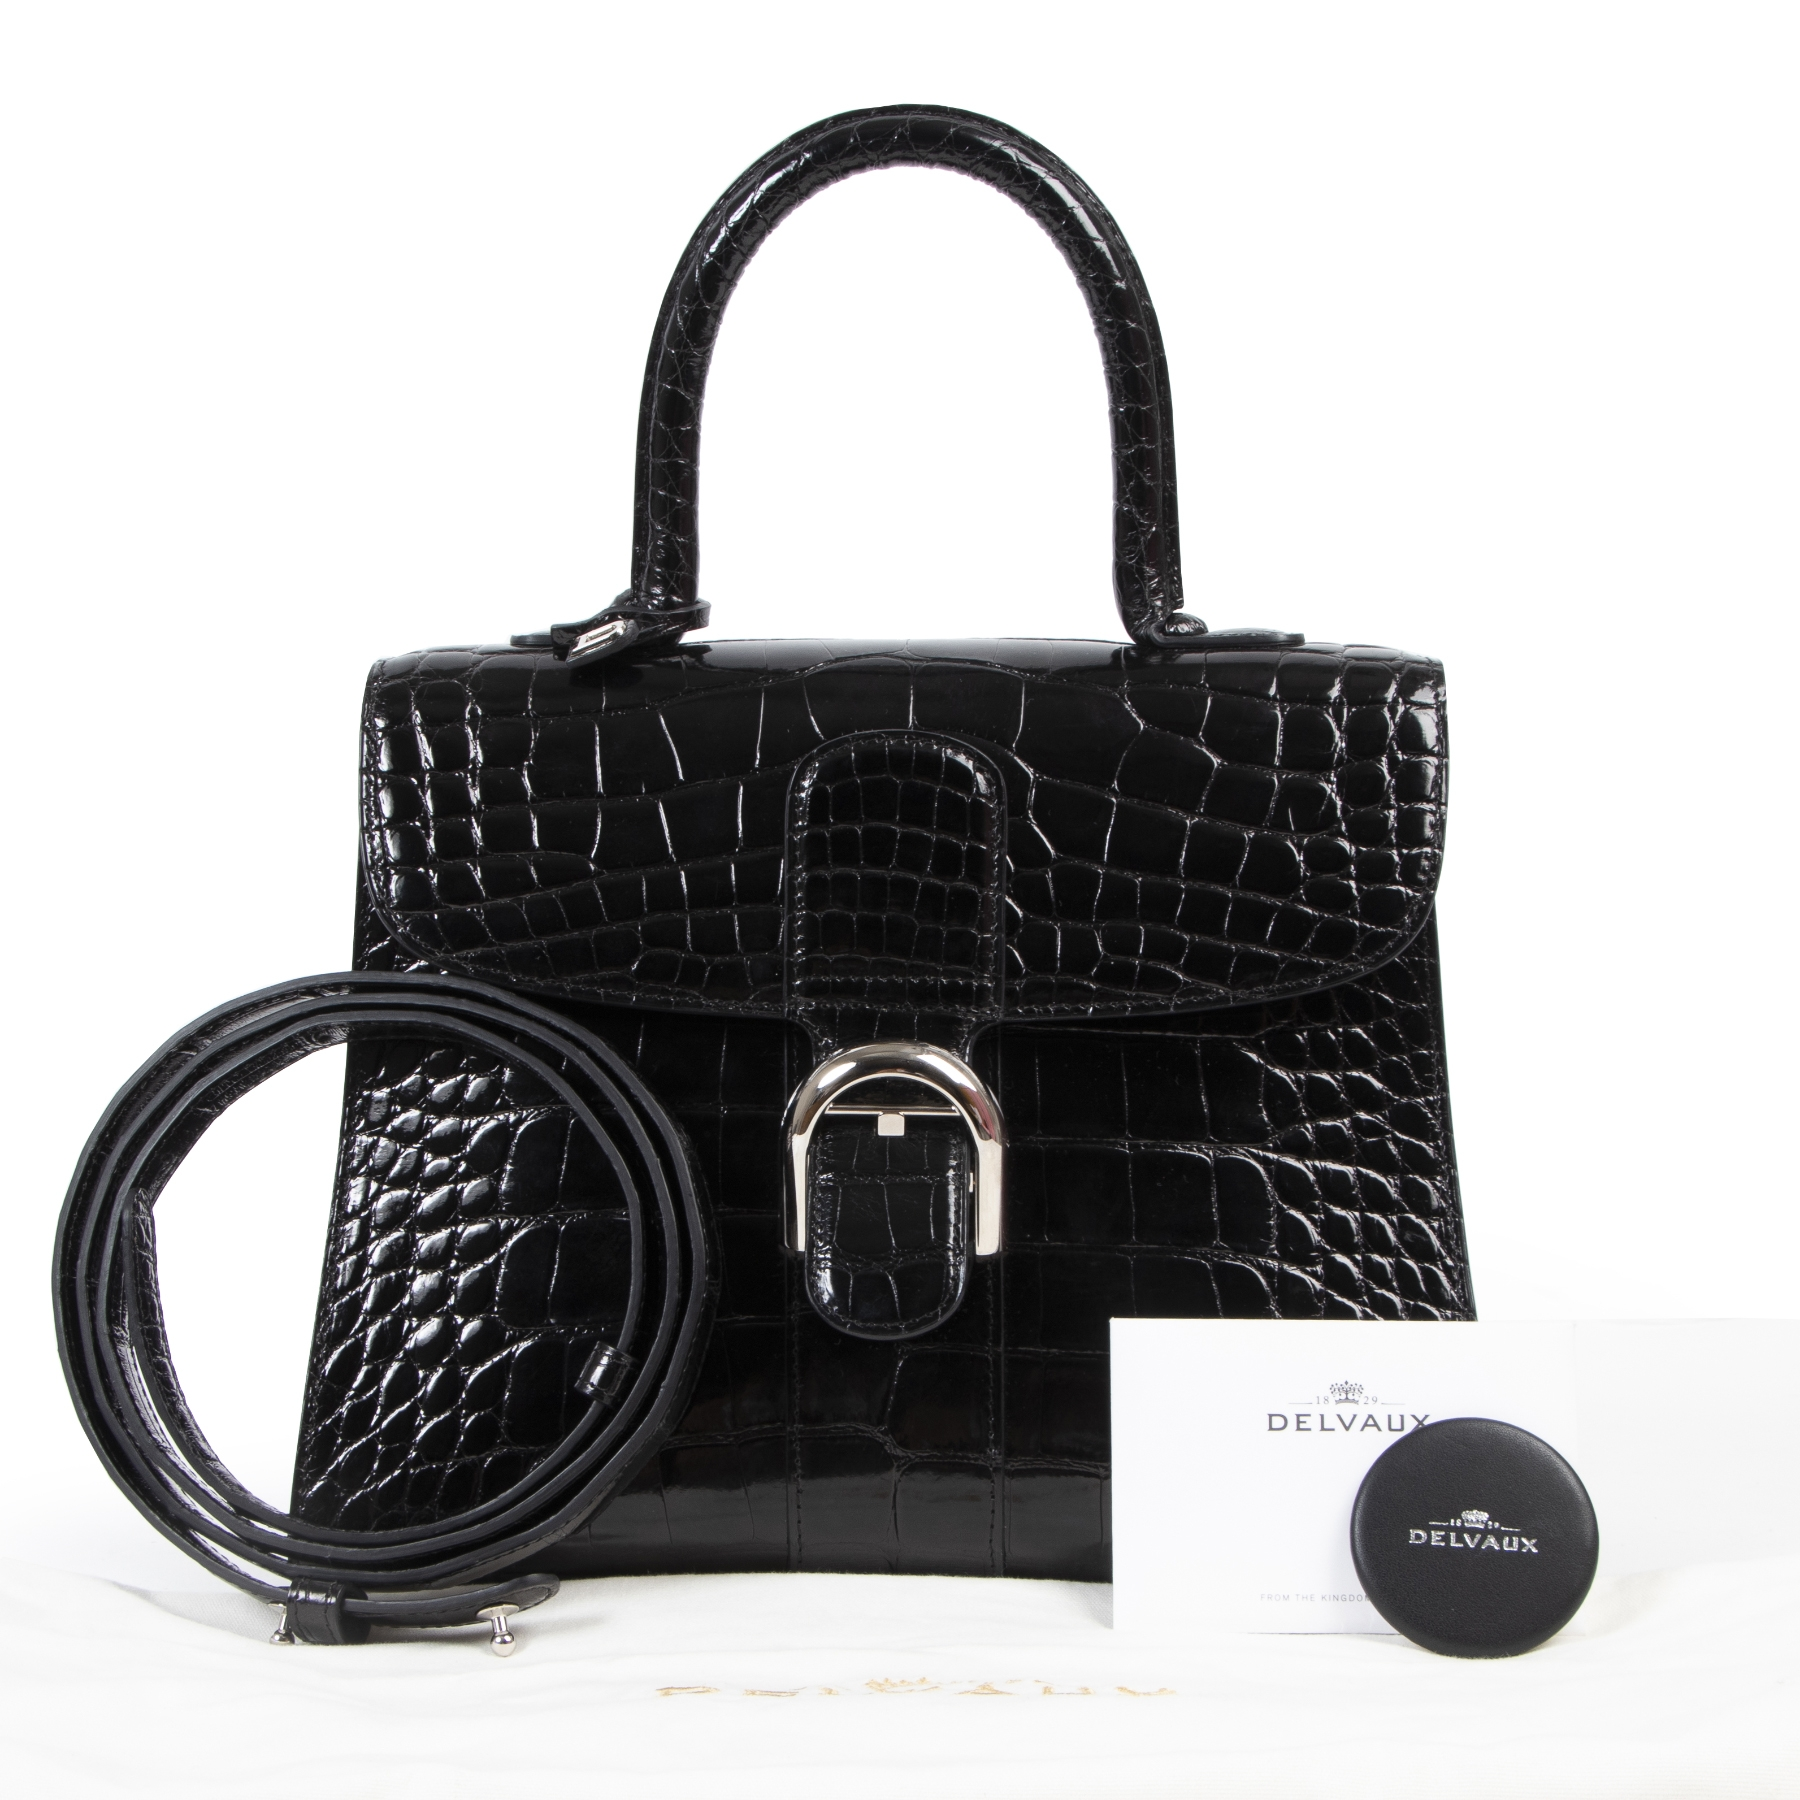 Delvaux Black Alligator Brillant MM 100% authentic designer bags online at Labellov